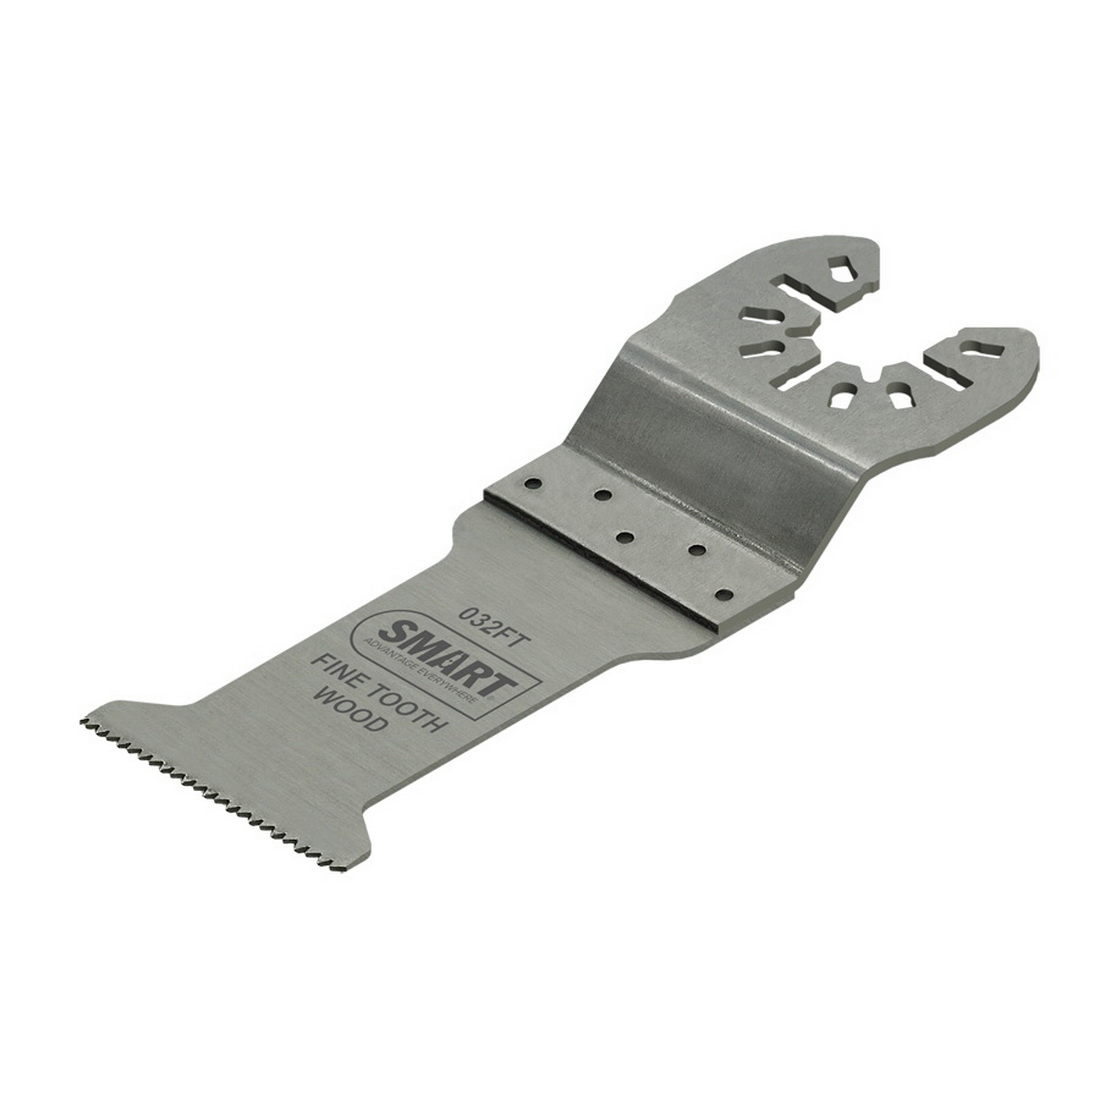 32mm Multi Tool Blade Fine Tooth Wood Cutting Single